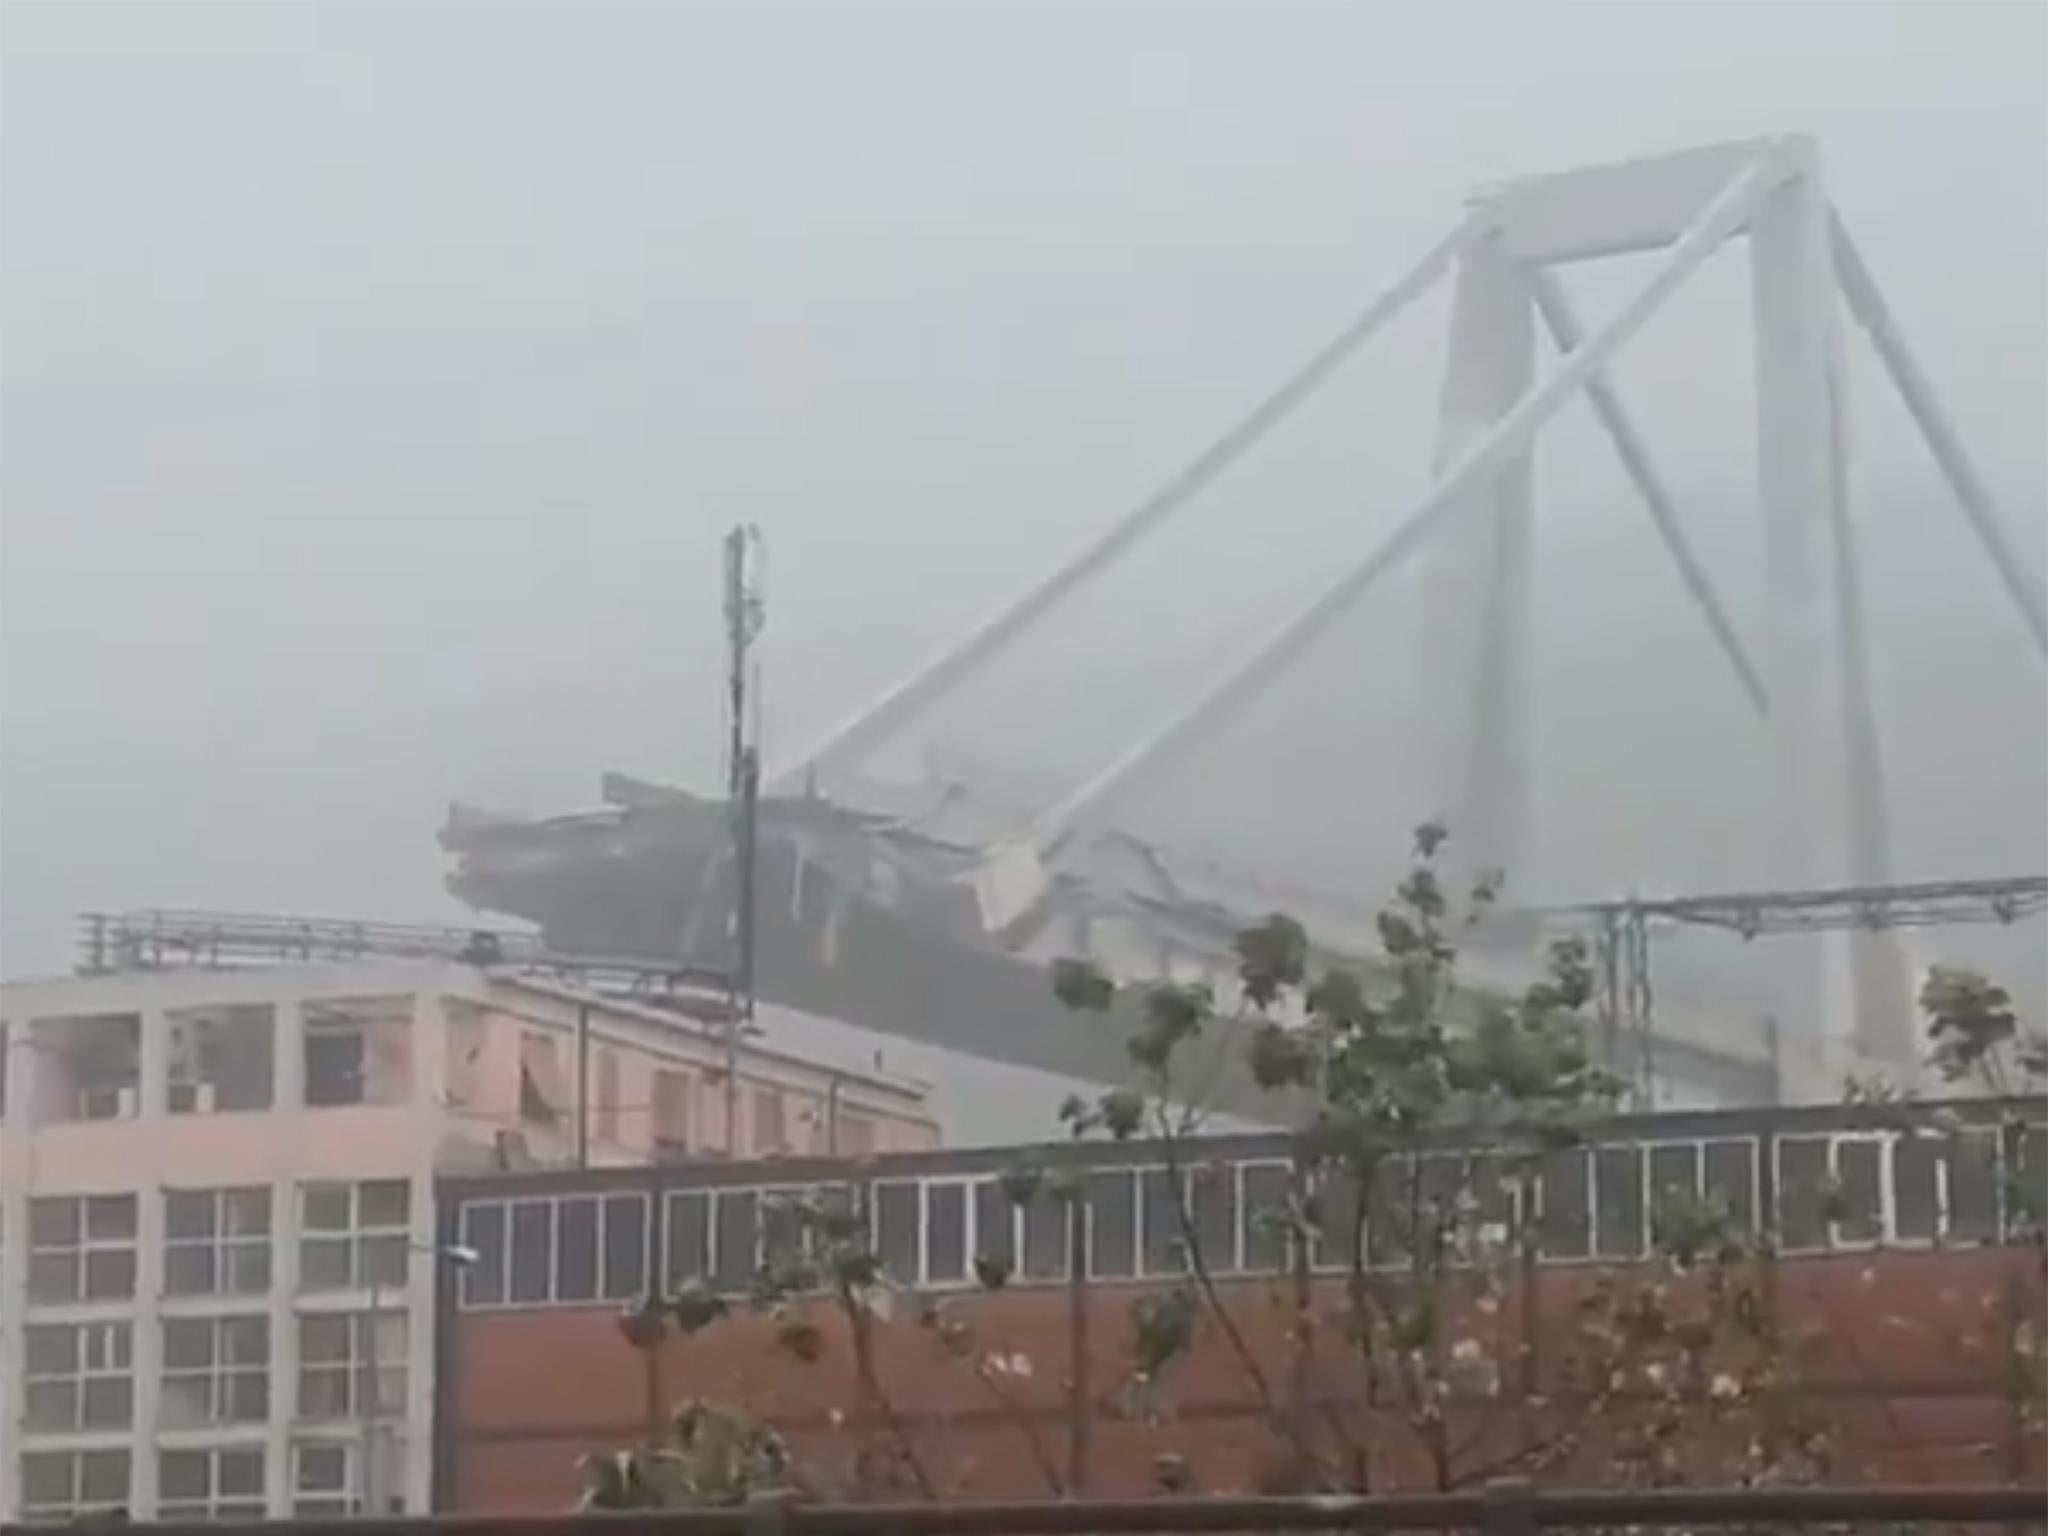 Why did the Genoa bridge collapse? Engineering experts weigh